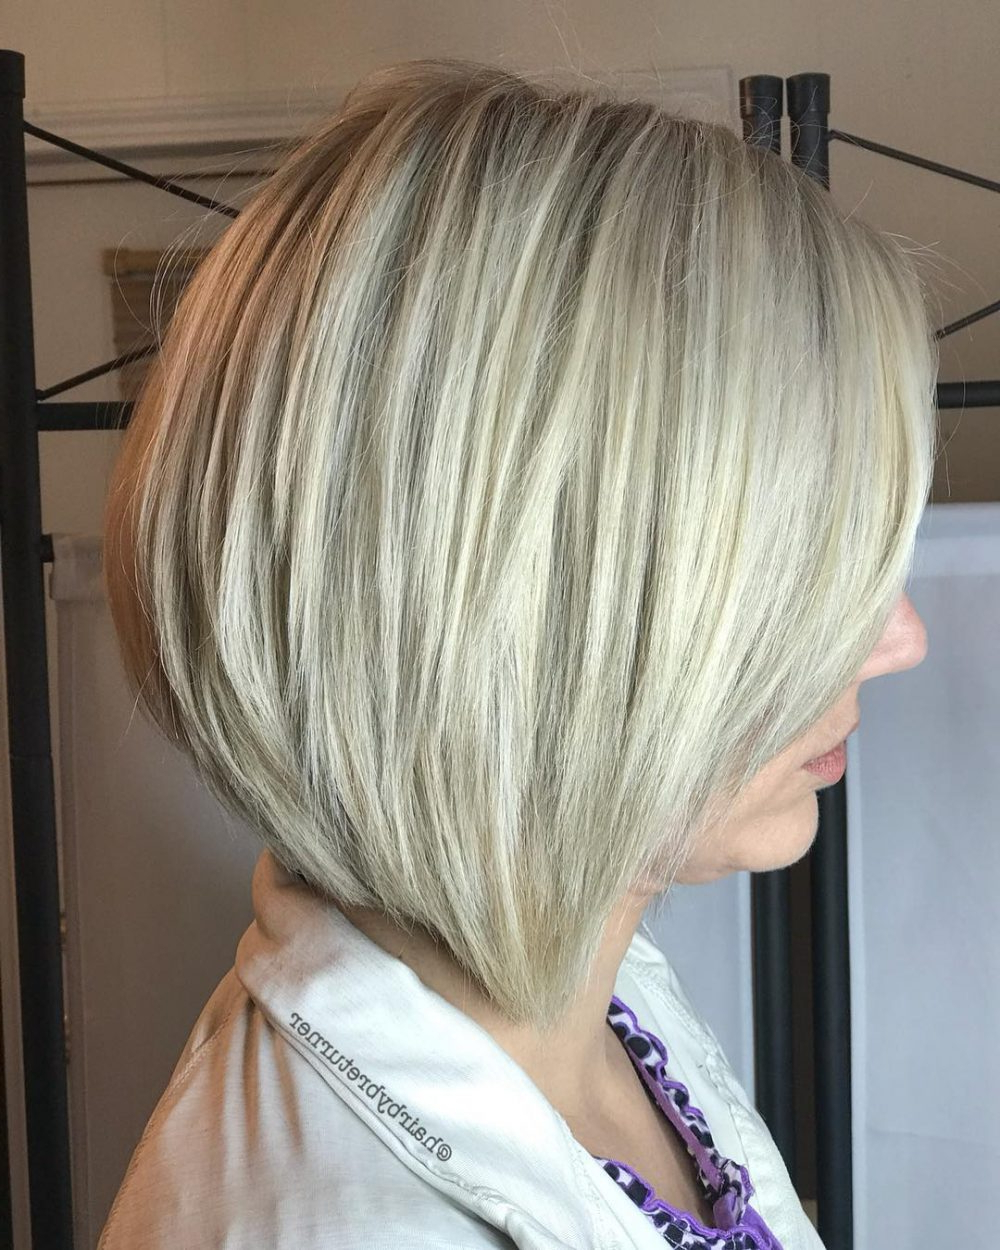 Newest Stylish Medium Haircuts For Women Over 40 Intended For 42 Sexiest Short Hairstyles For Women Over 40 In (View 4 of 20)